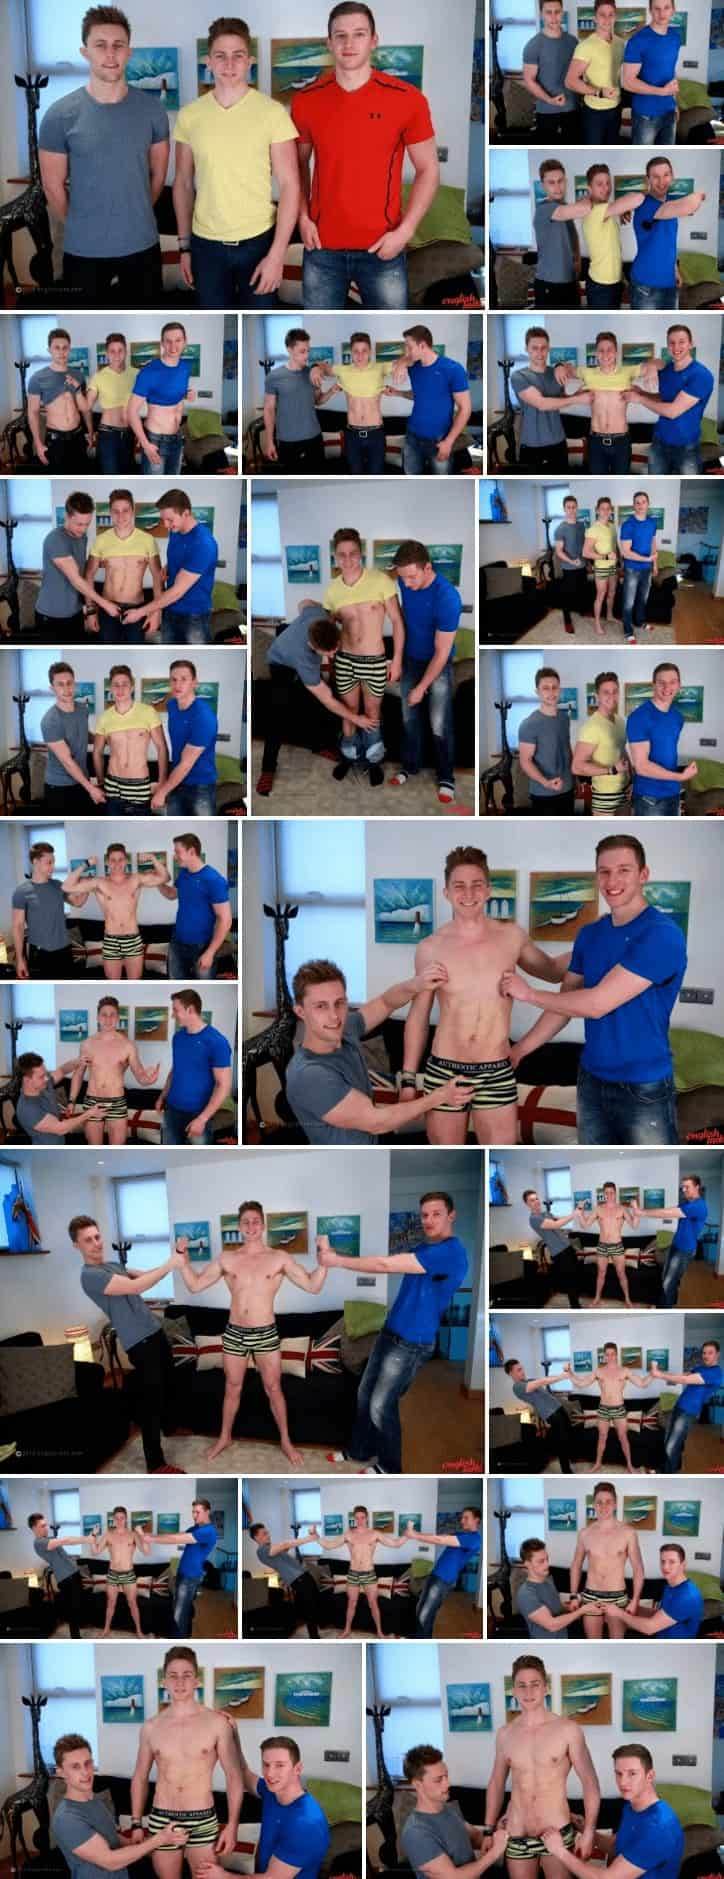 Marc Wanks Cock for the 1st Time & Manages to Suck Andrew & Cameron Together!